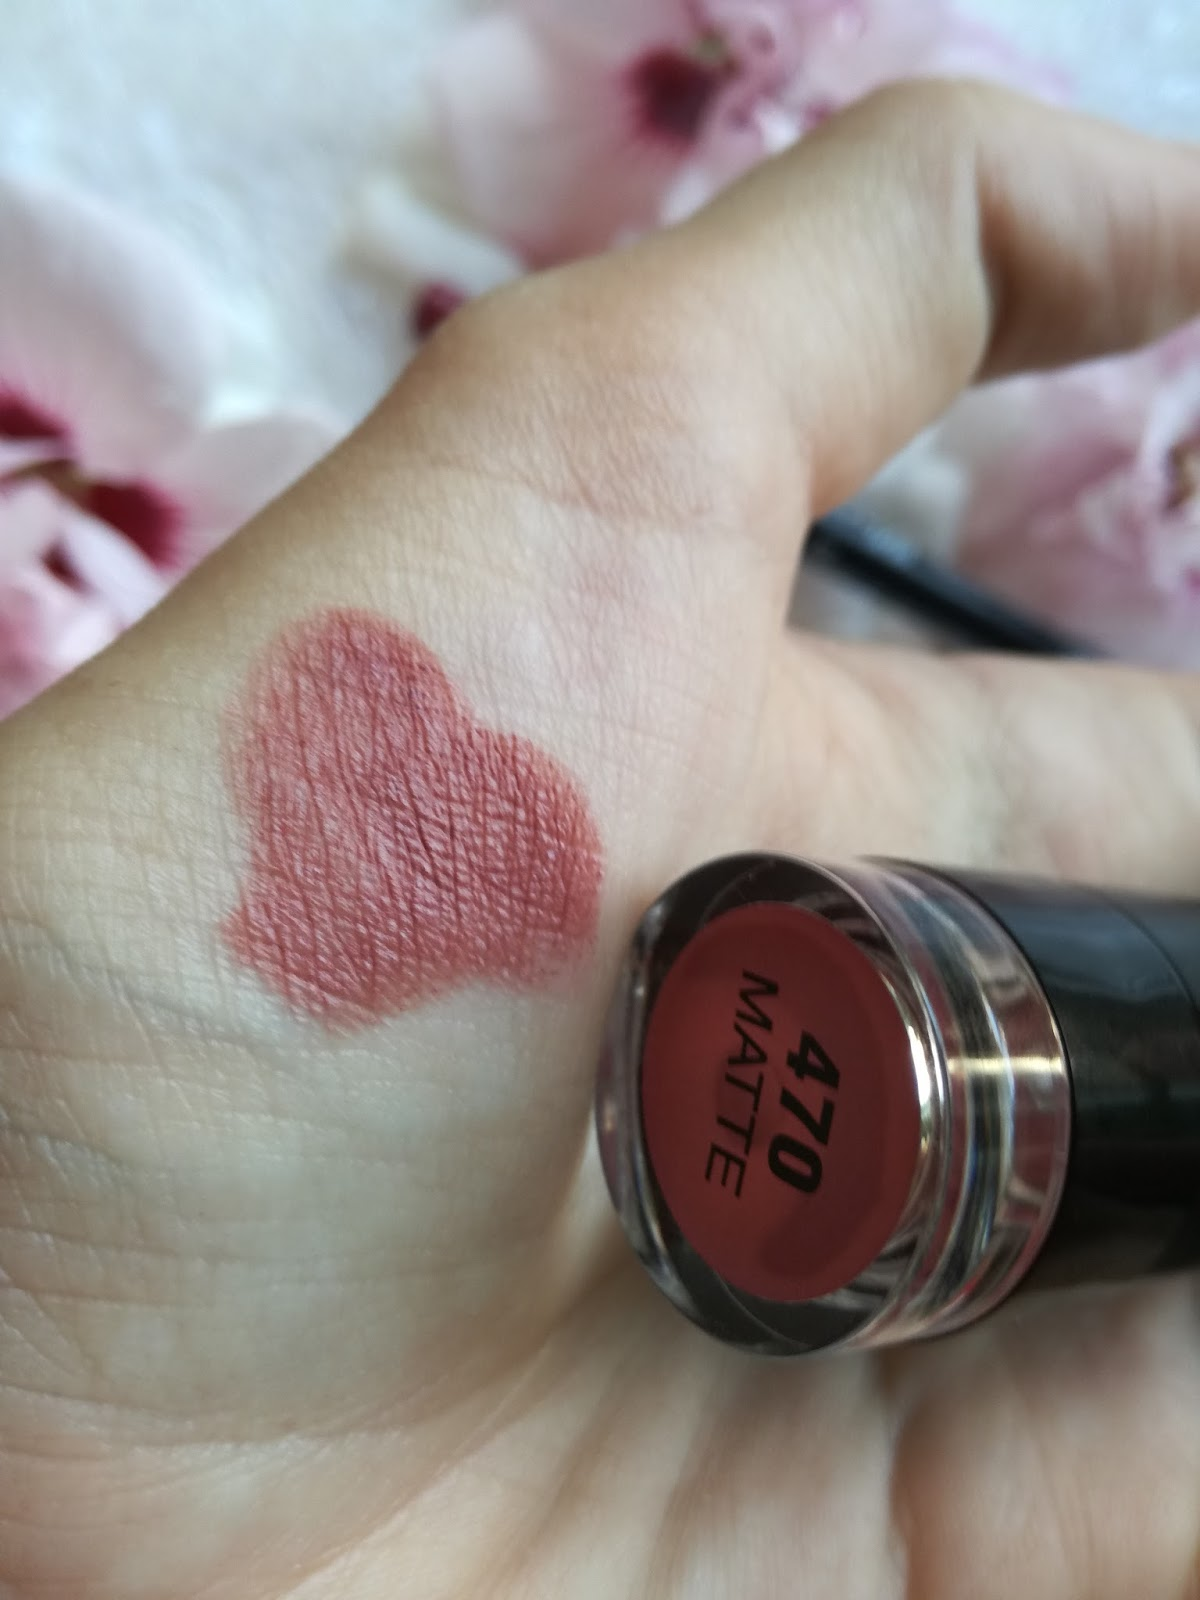 trend-it-up-dm-make-up-swatch-ultra-matte-lipstick-470